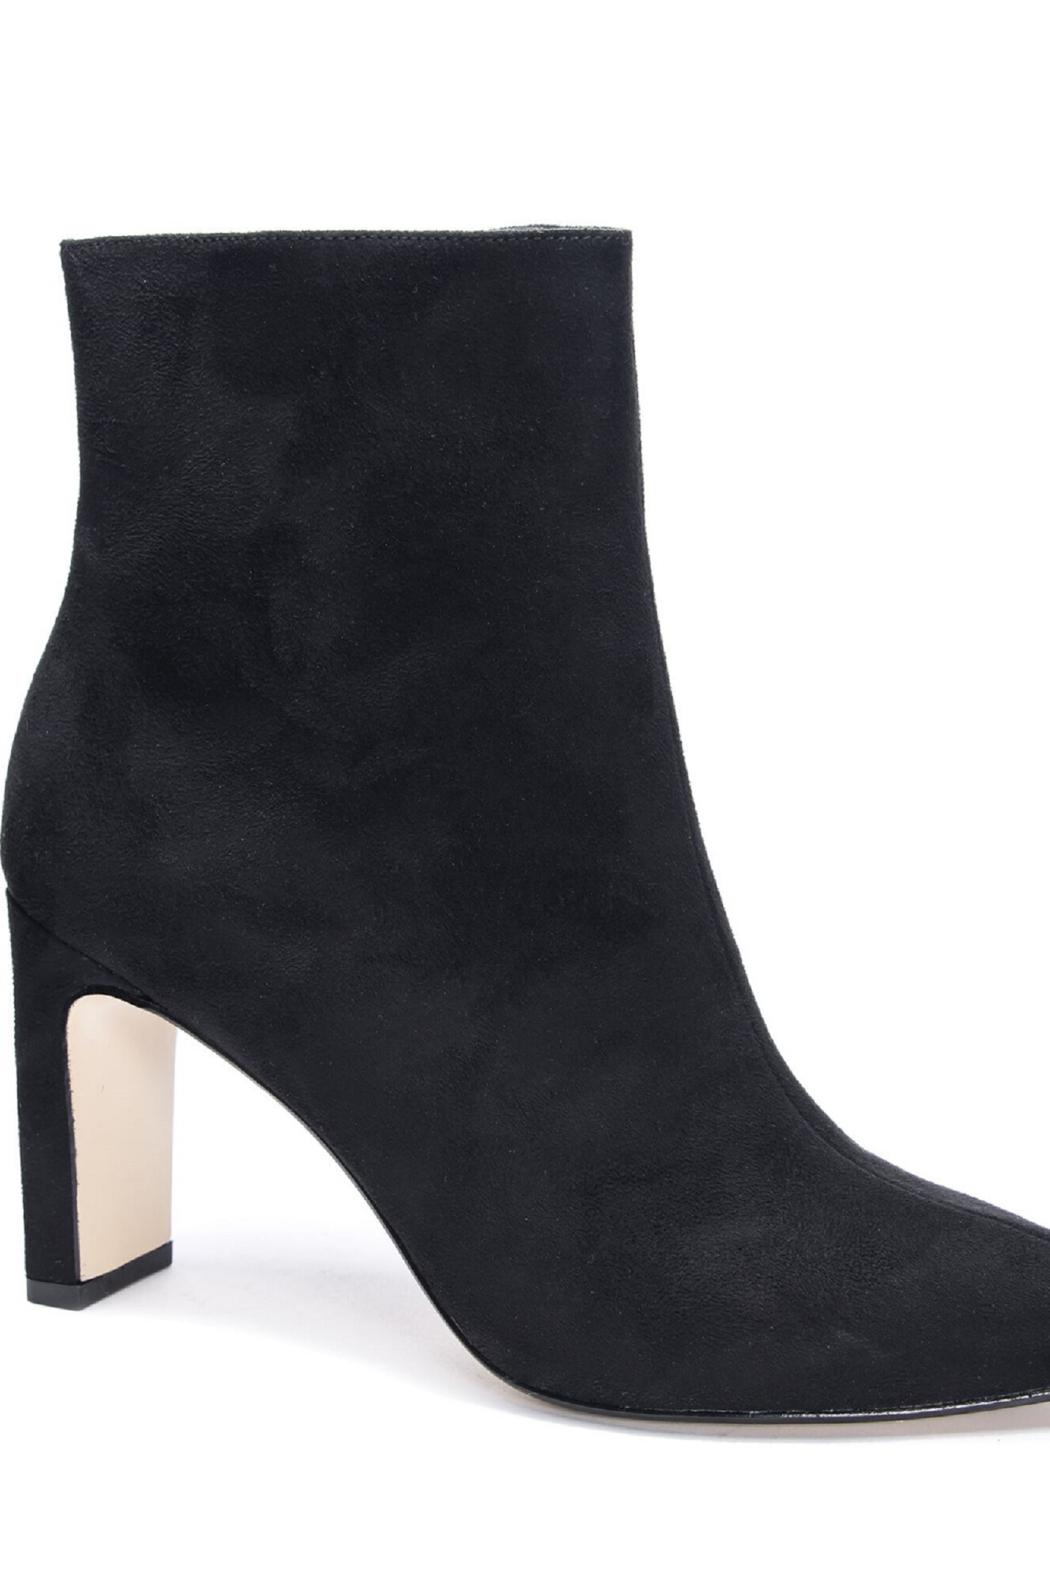 Chinese Laundry Erin Suede Boot - Main Image